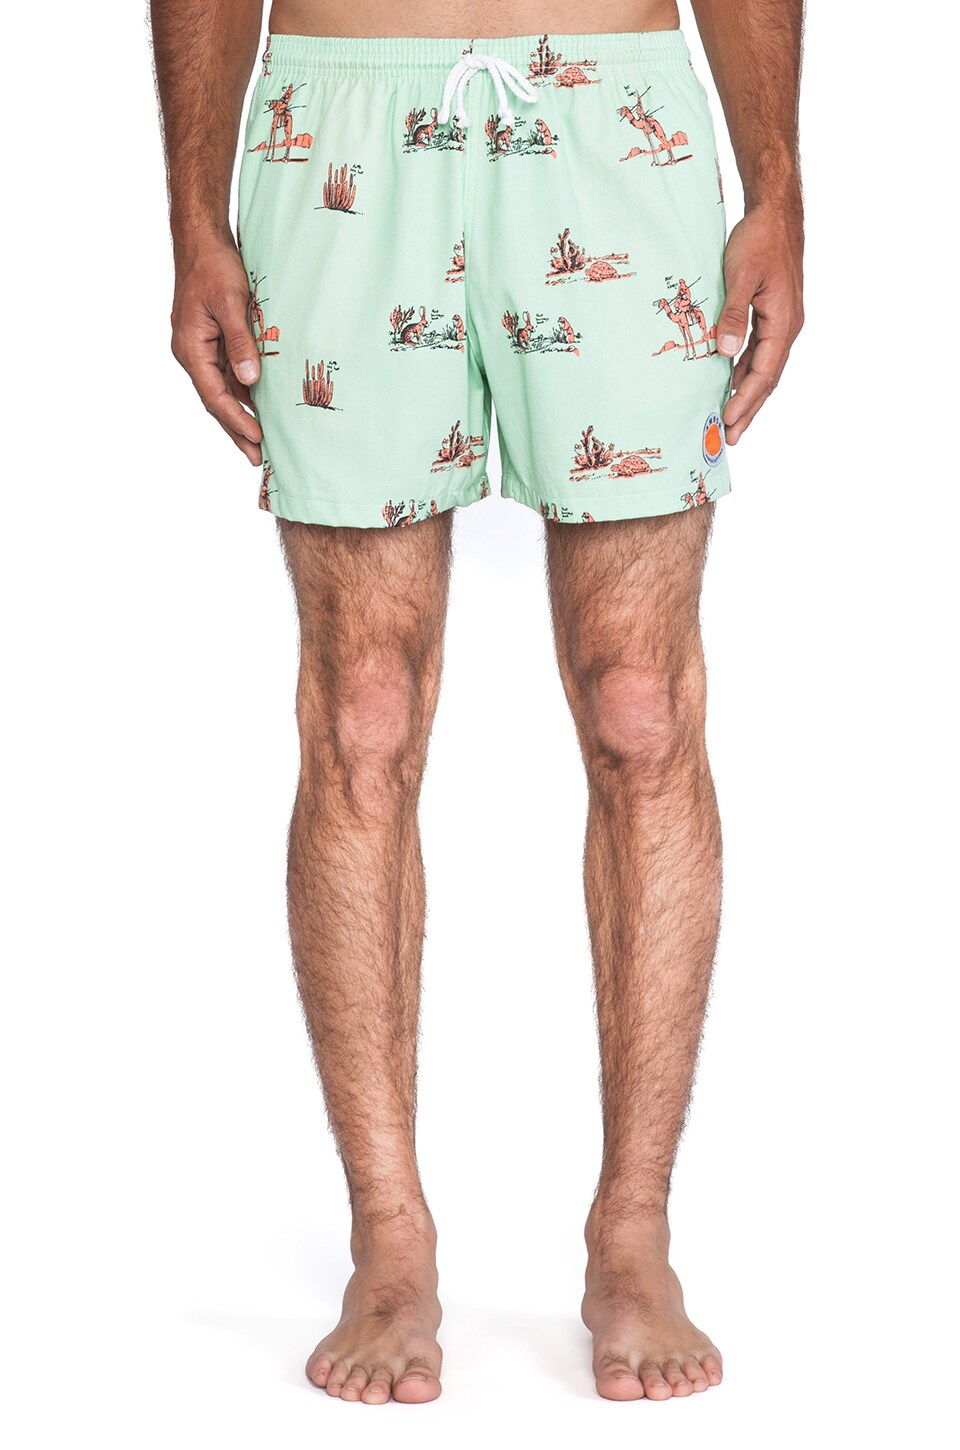 Ambsn Nomad Swim Short in Mint